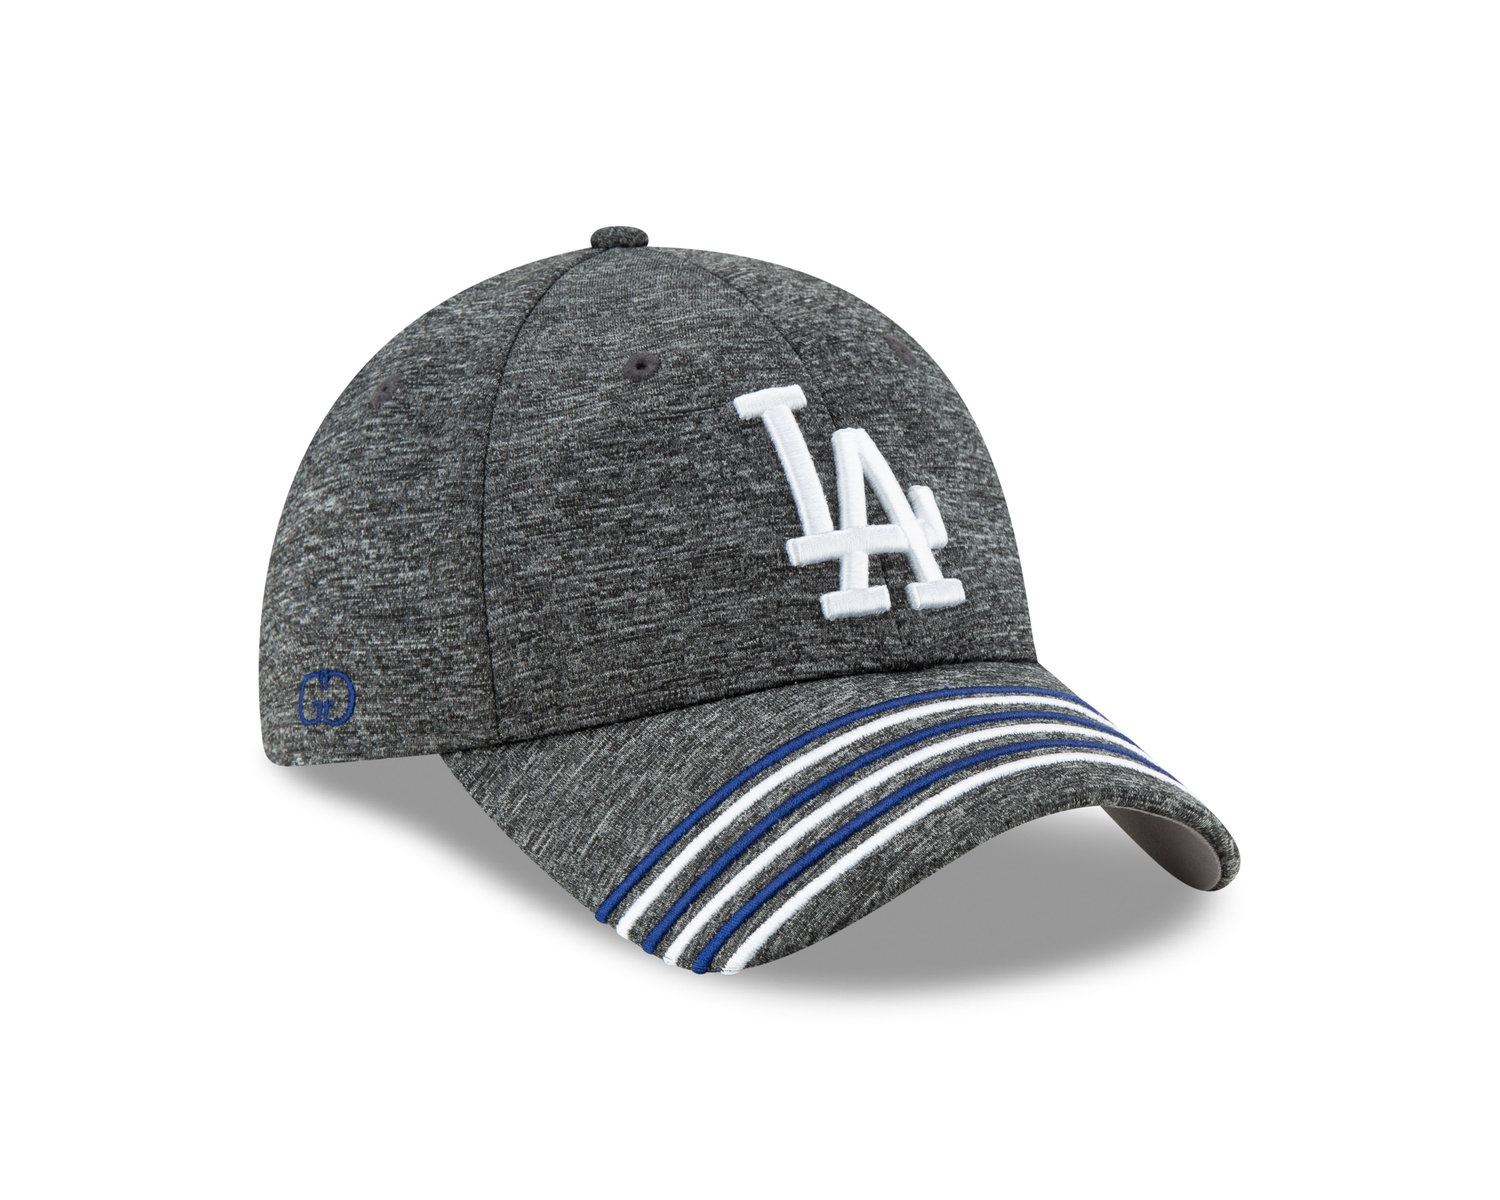 6d0511f2fa0 GG x New Era x Dodgers — Grungy Gentleman